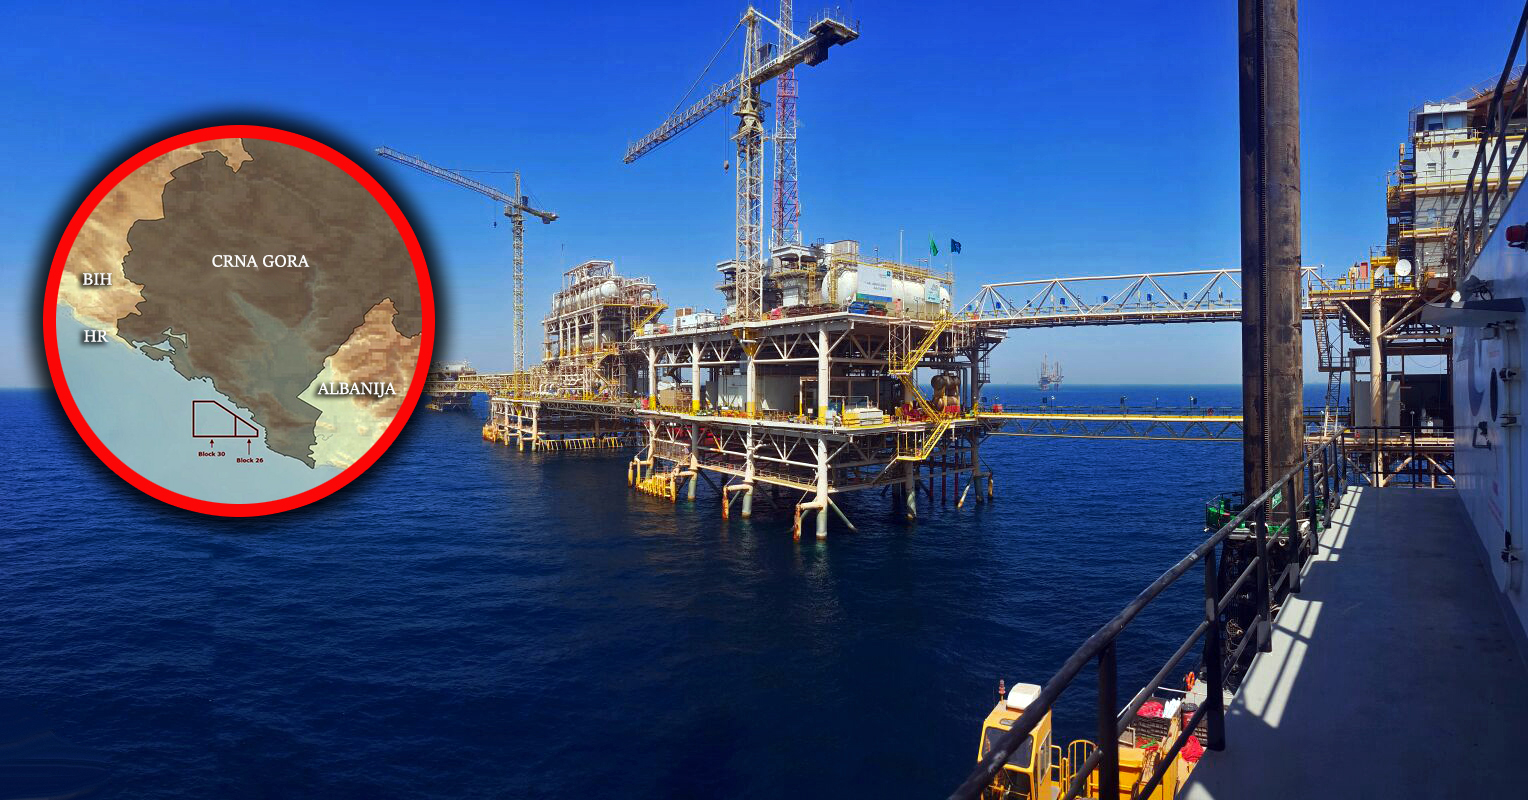 Montenegro: COVID-19 affects oil and gas exploration